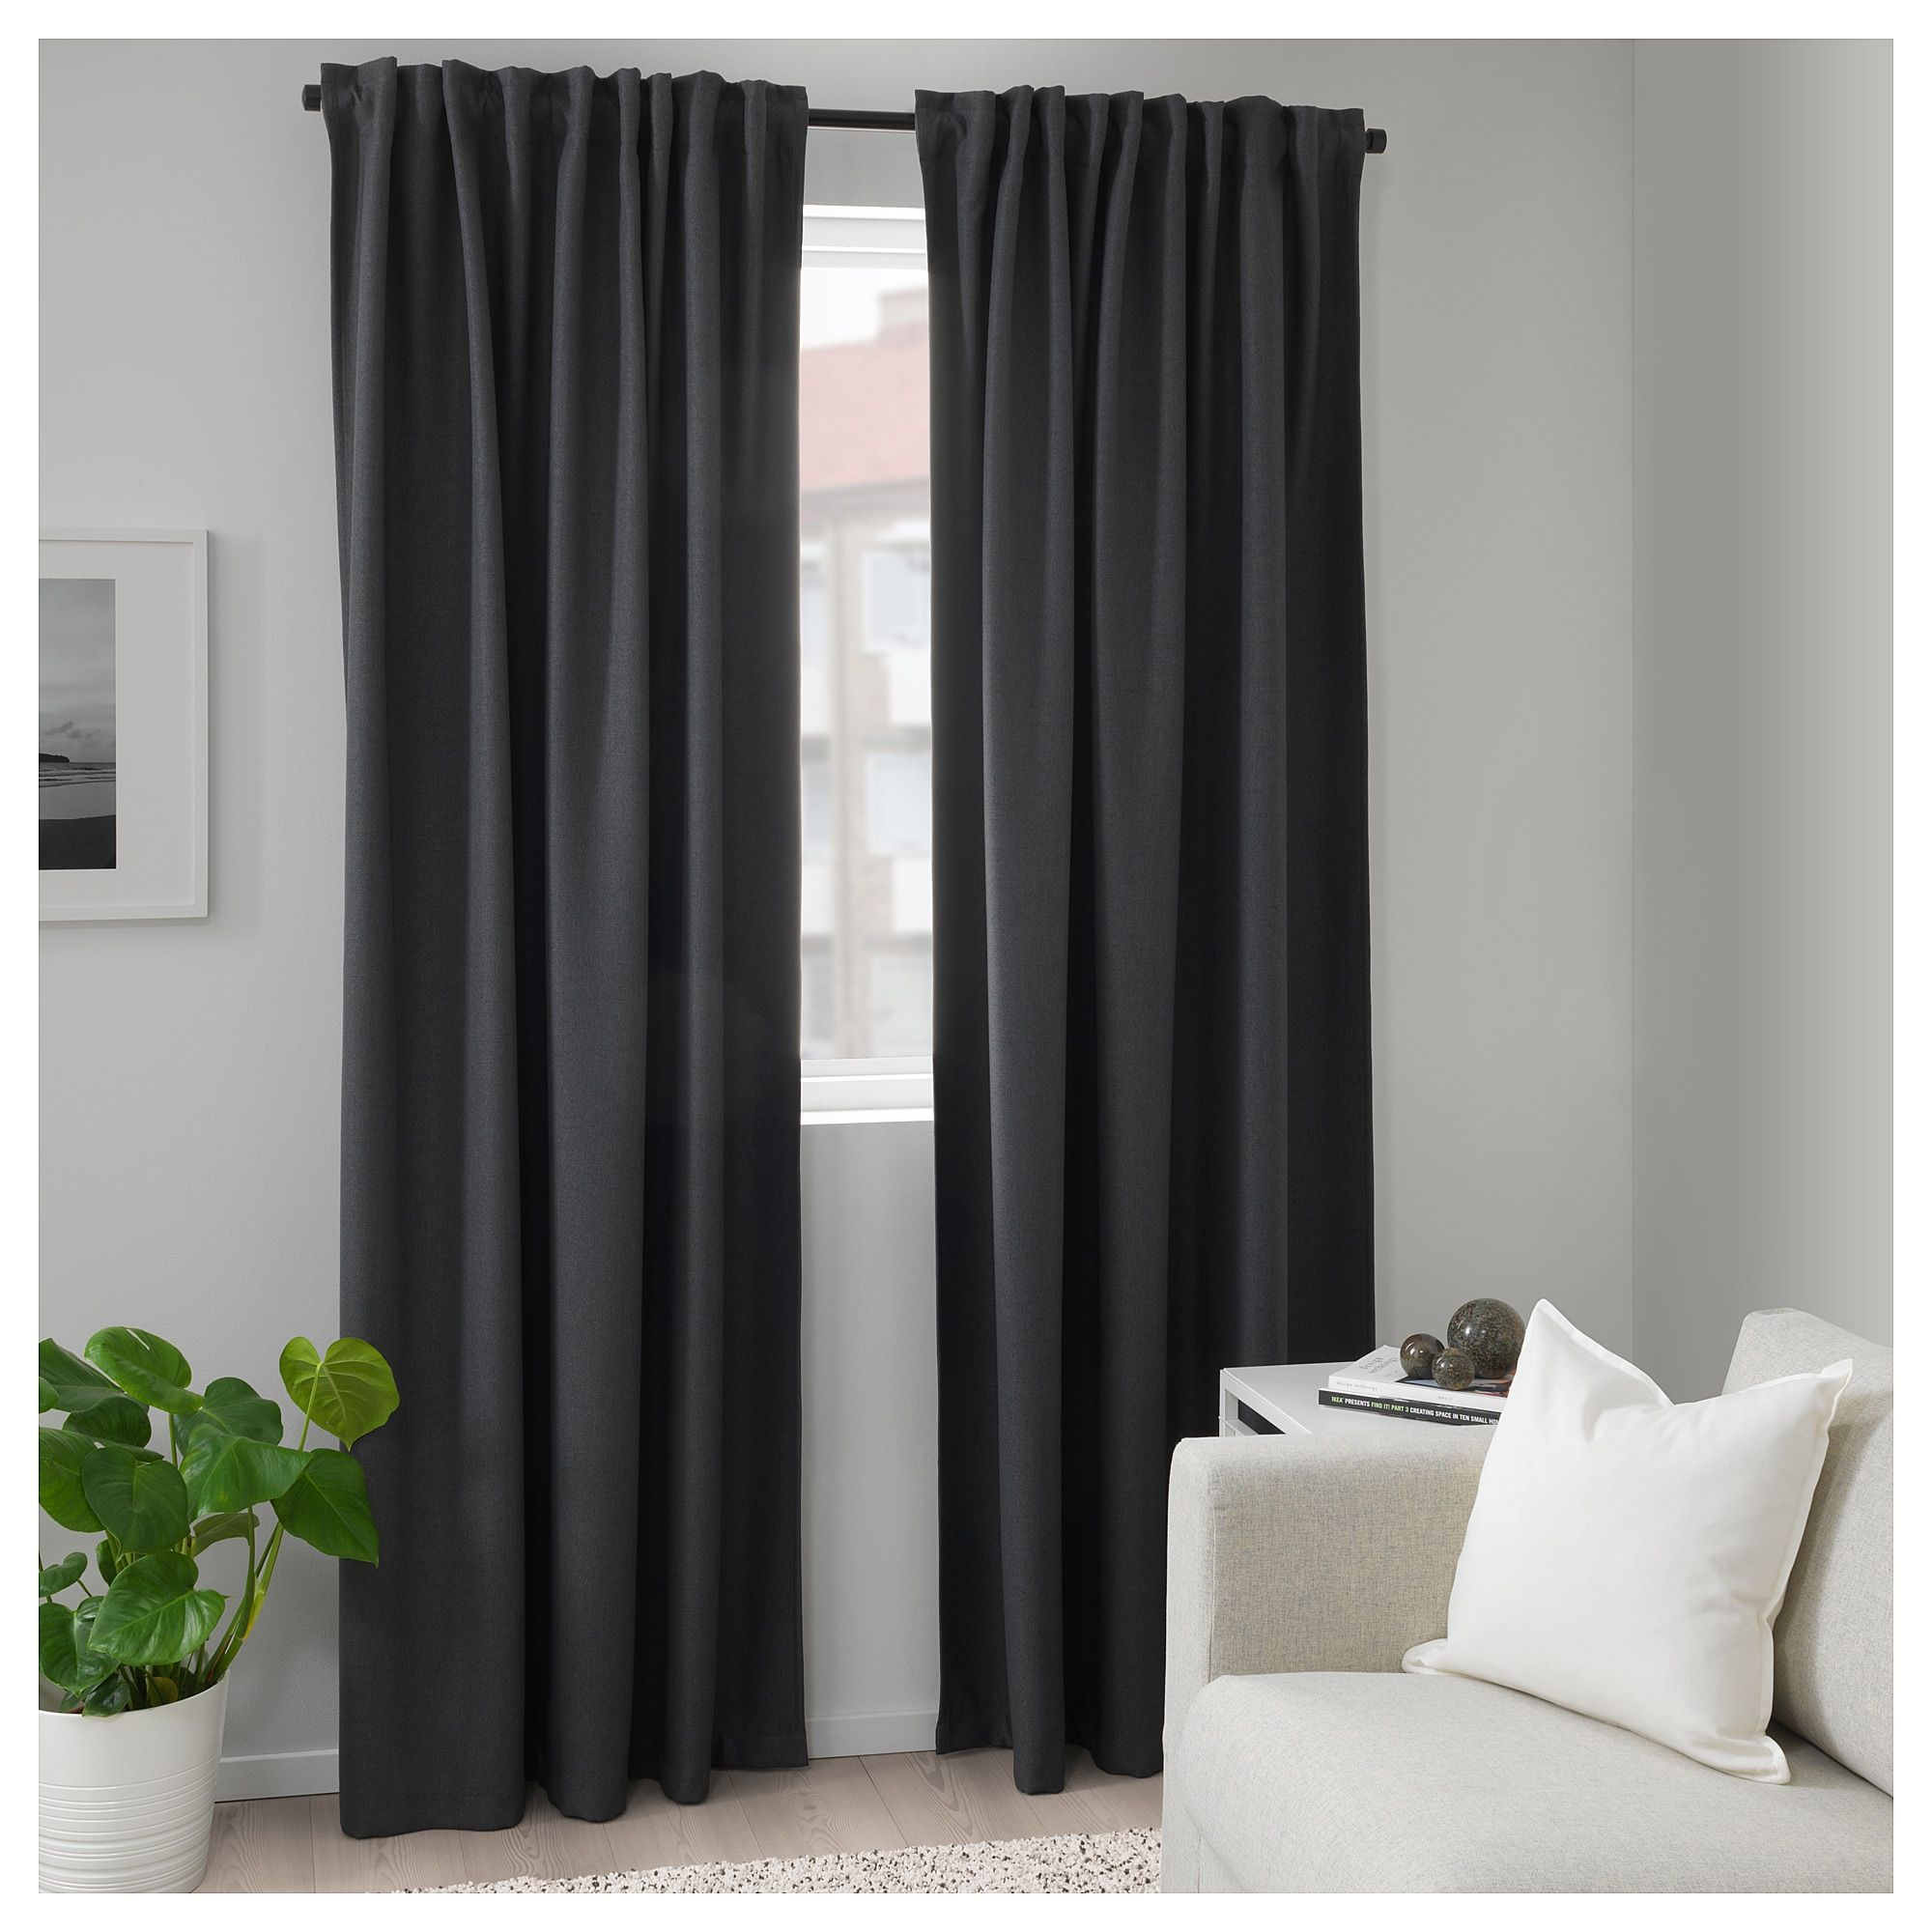 Annakajsa Room Darkening Curtains 1 Pair Gray 57x98 Ikea Curtains Bedroom Block Out Curtains Room Darkening Curtains